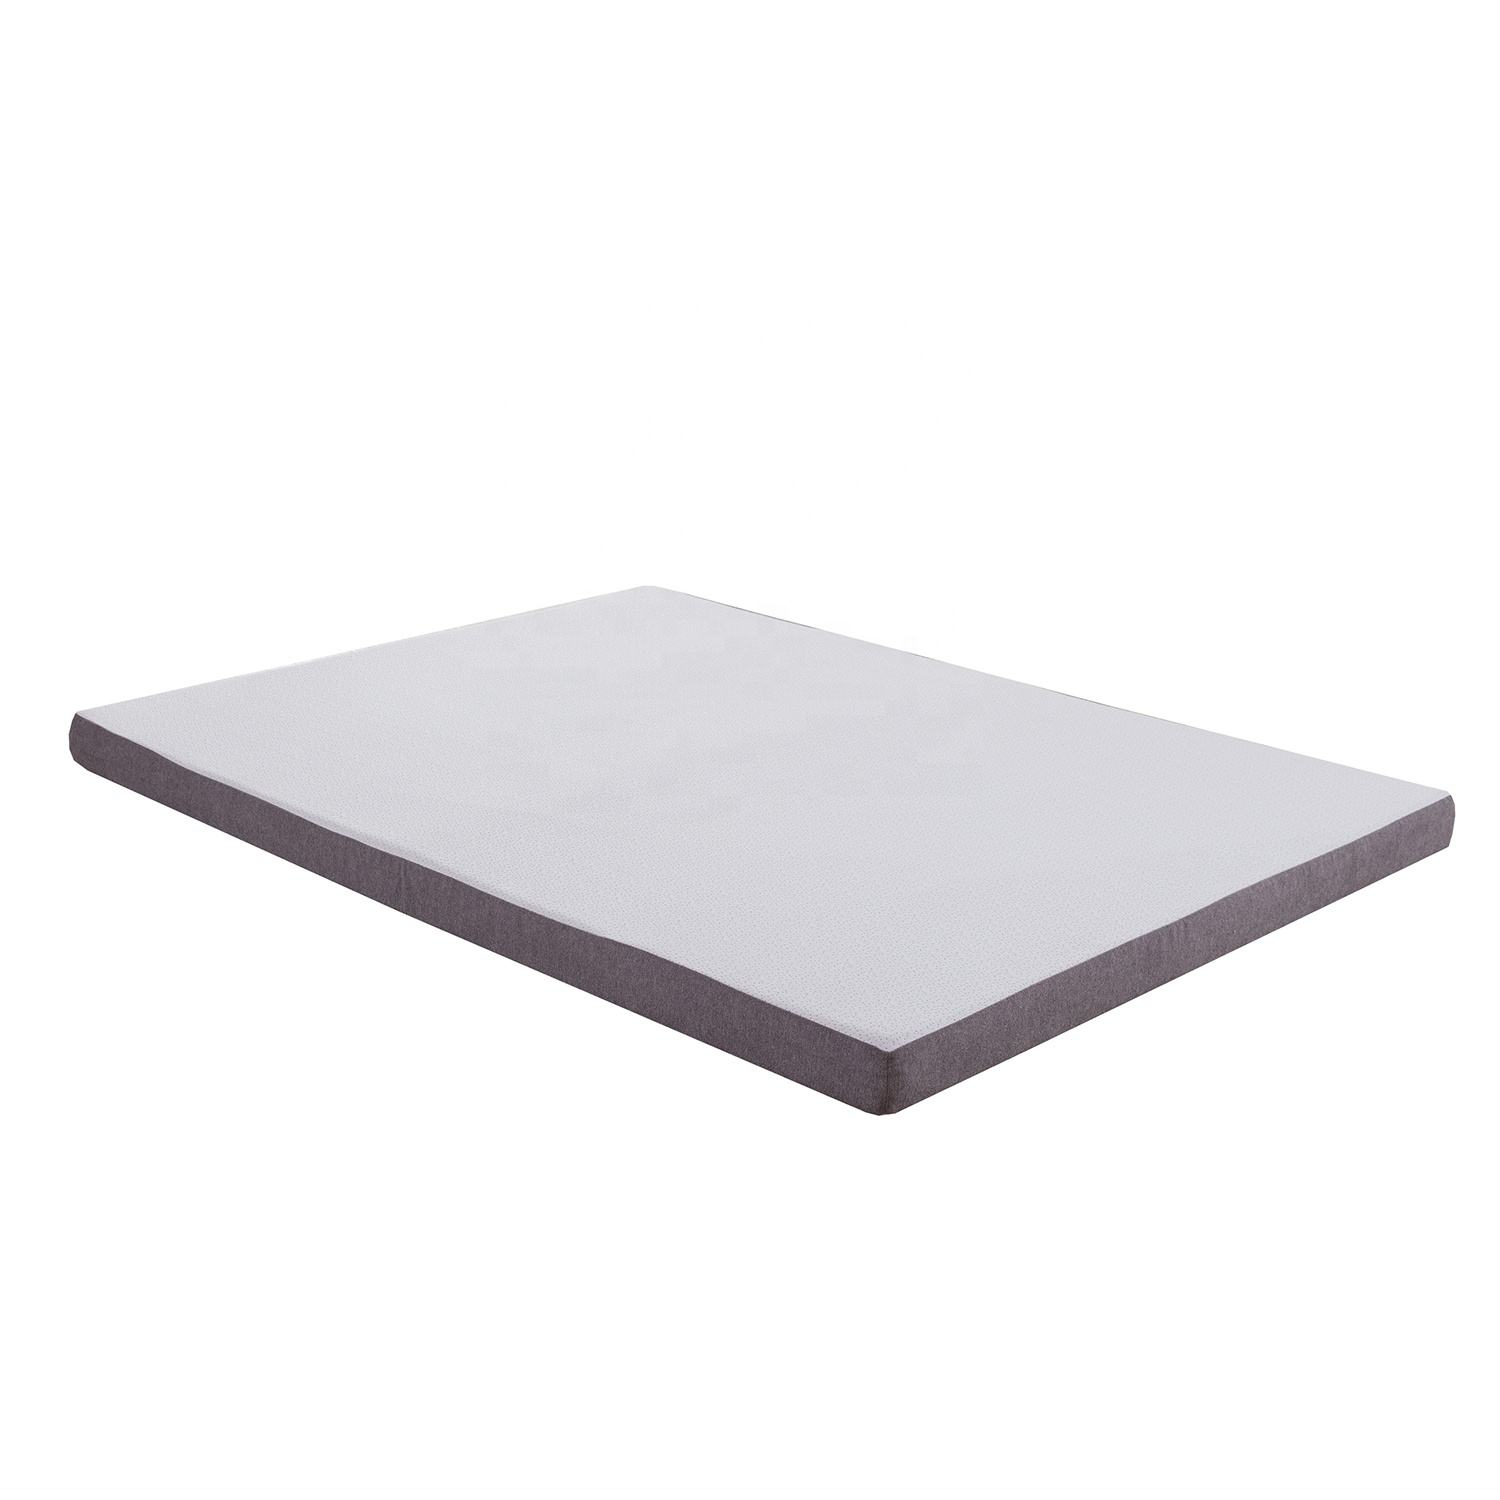 Memory Foam Bed Air <span class=keywords><strong>Matras</strong></span>